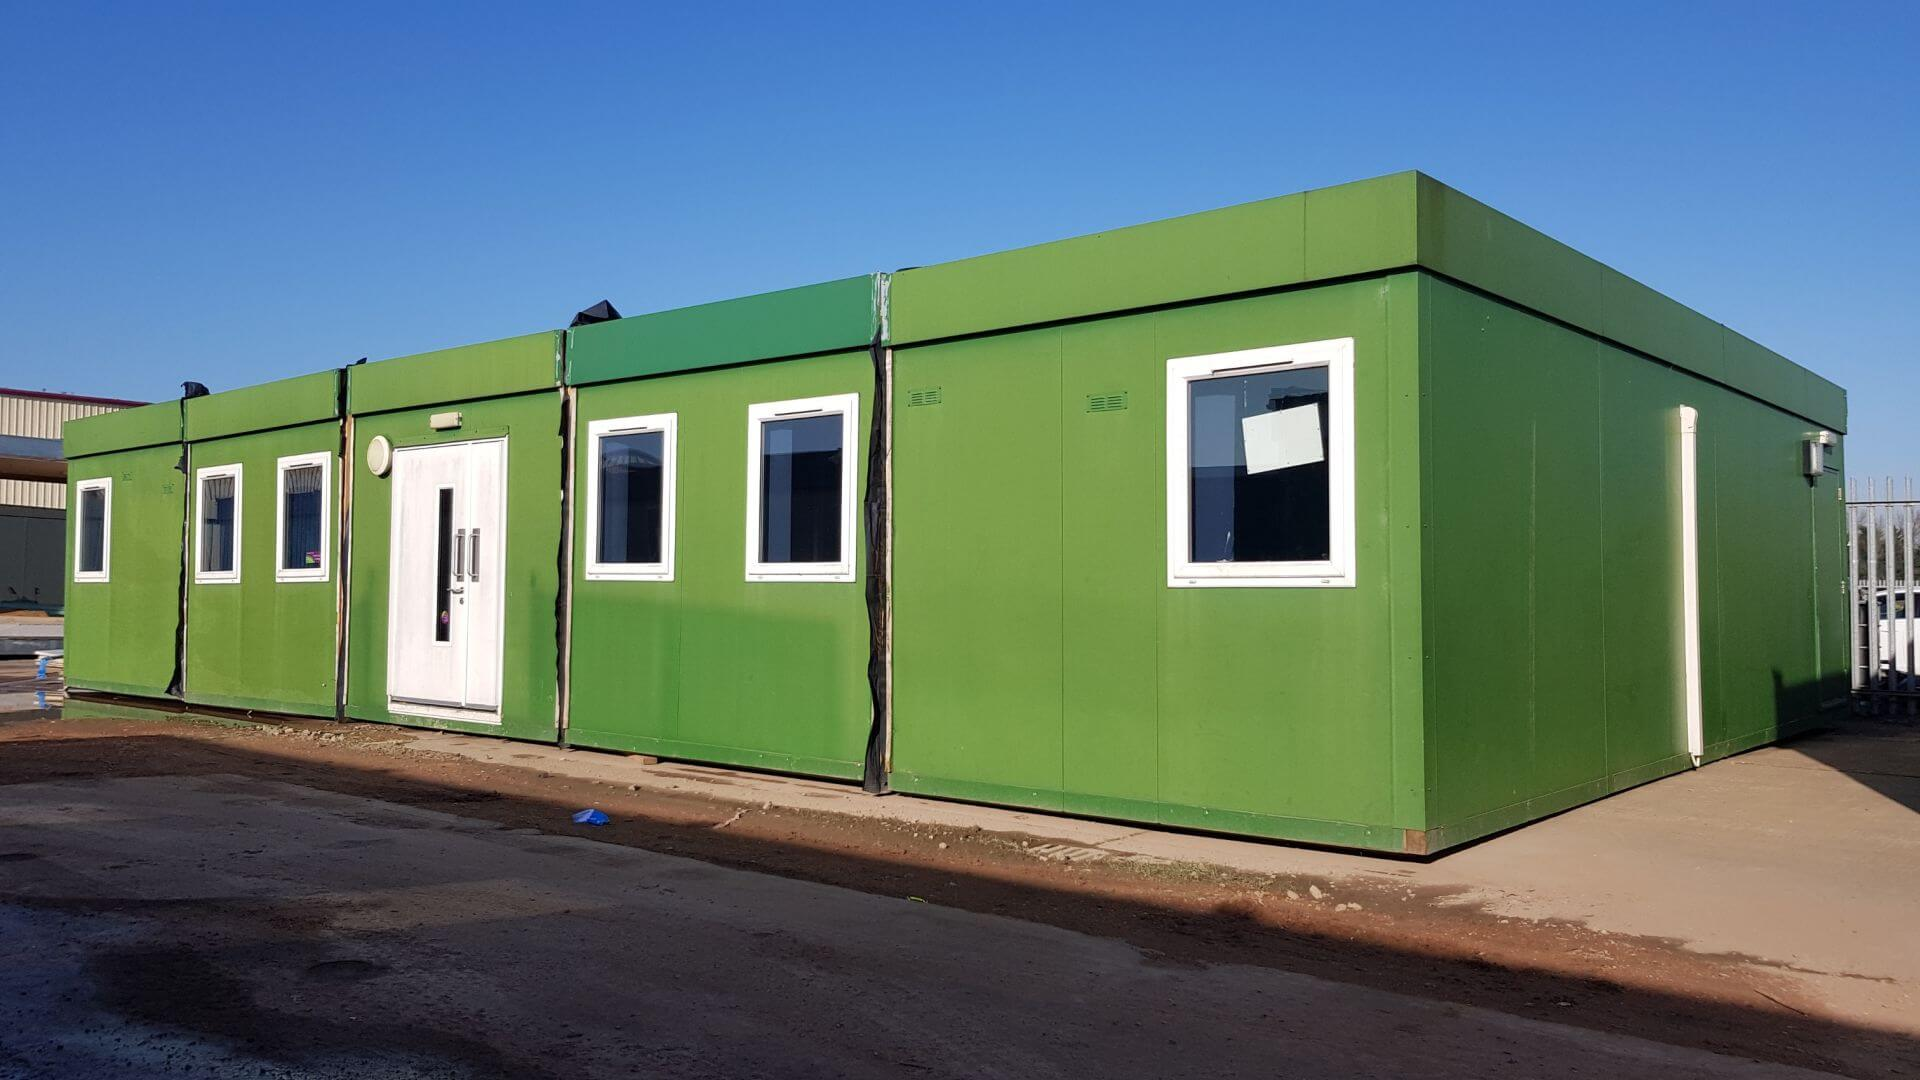 138 m² Five Section Modular Building Image